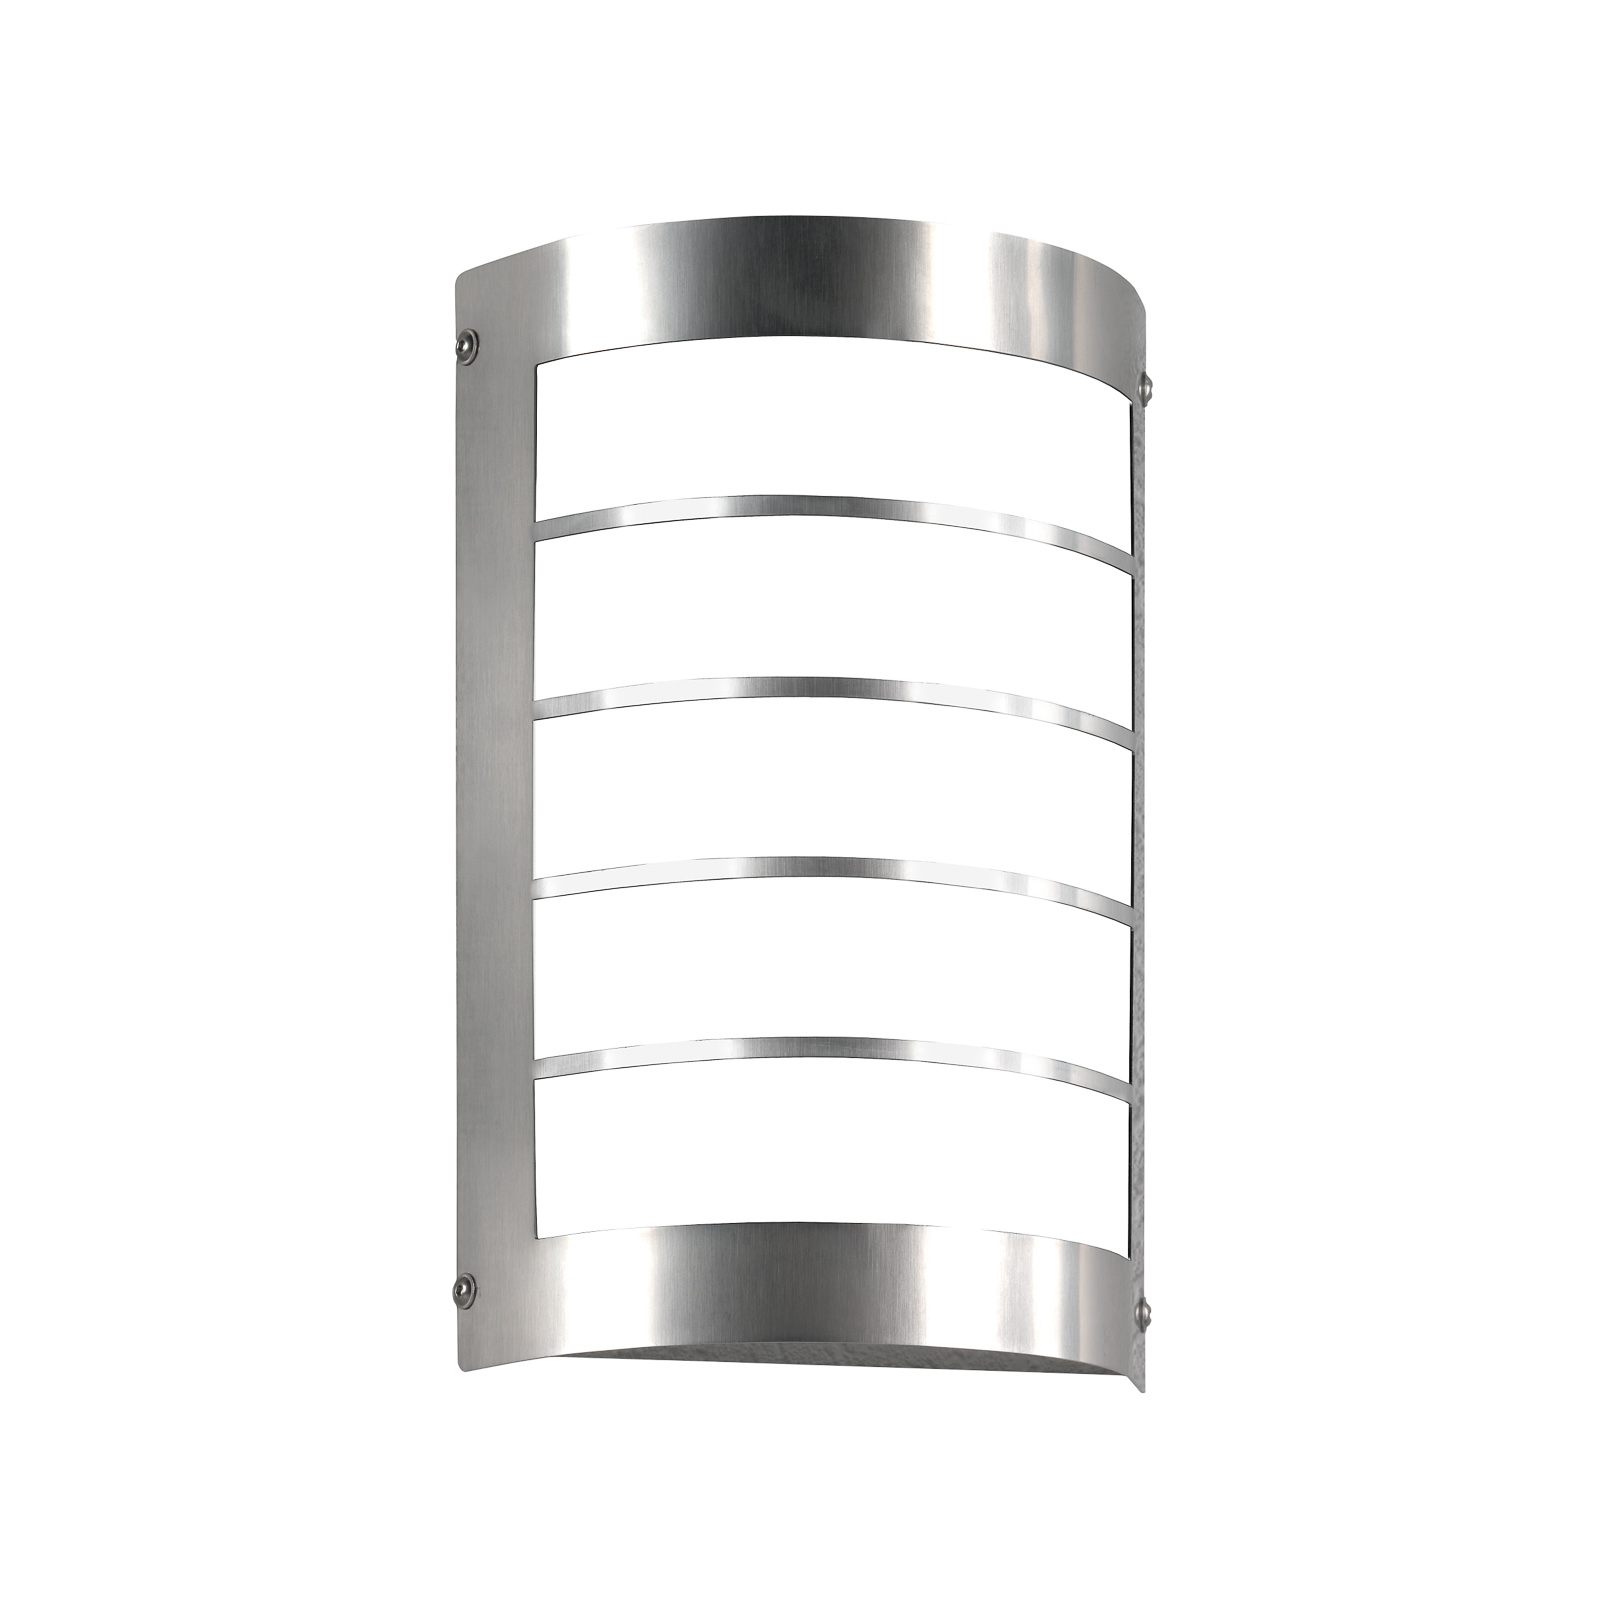 Marco 1 LED outdoor wall light_2011215_1